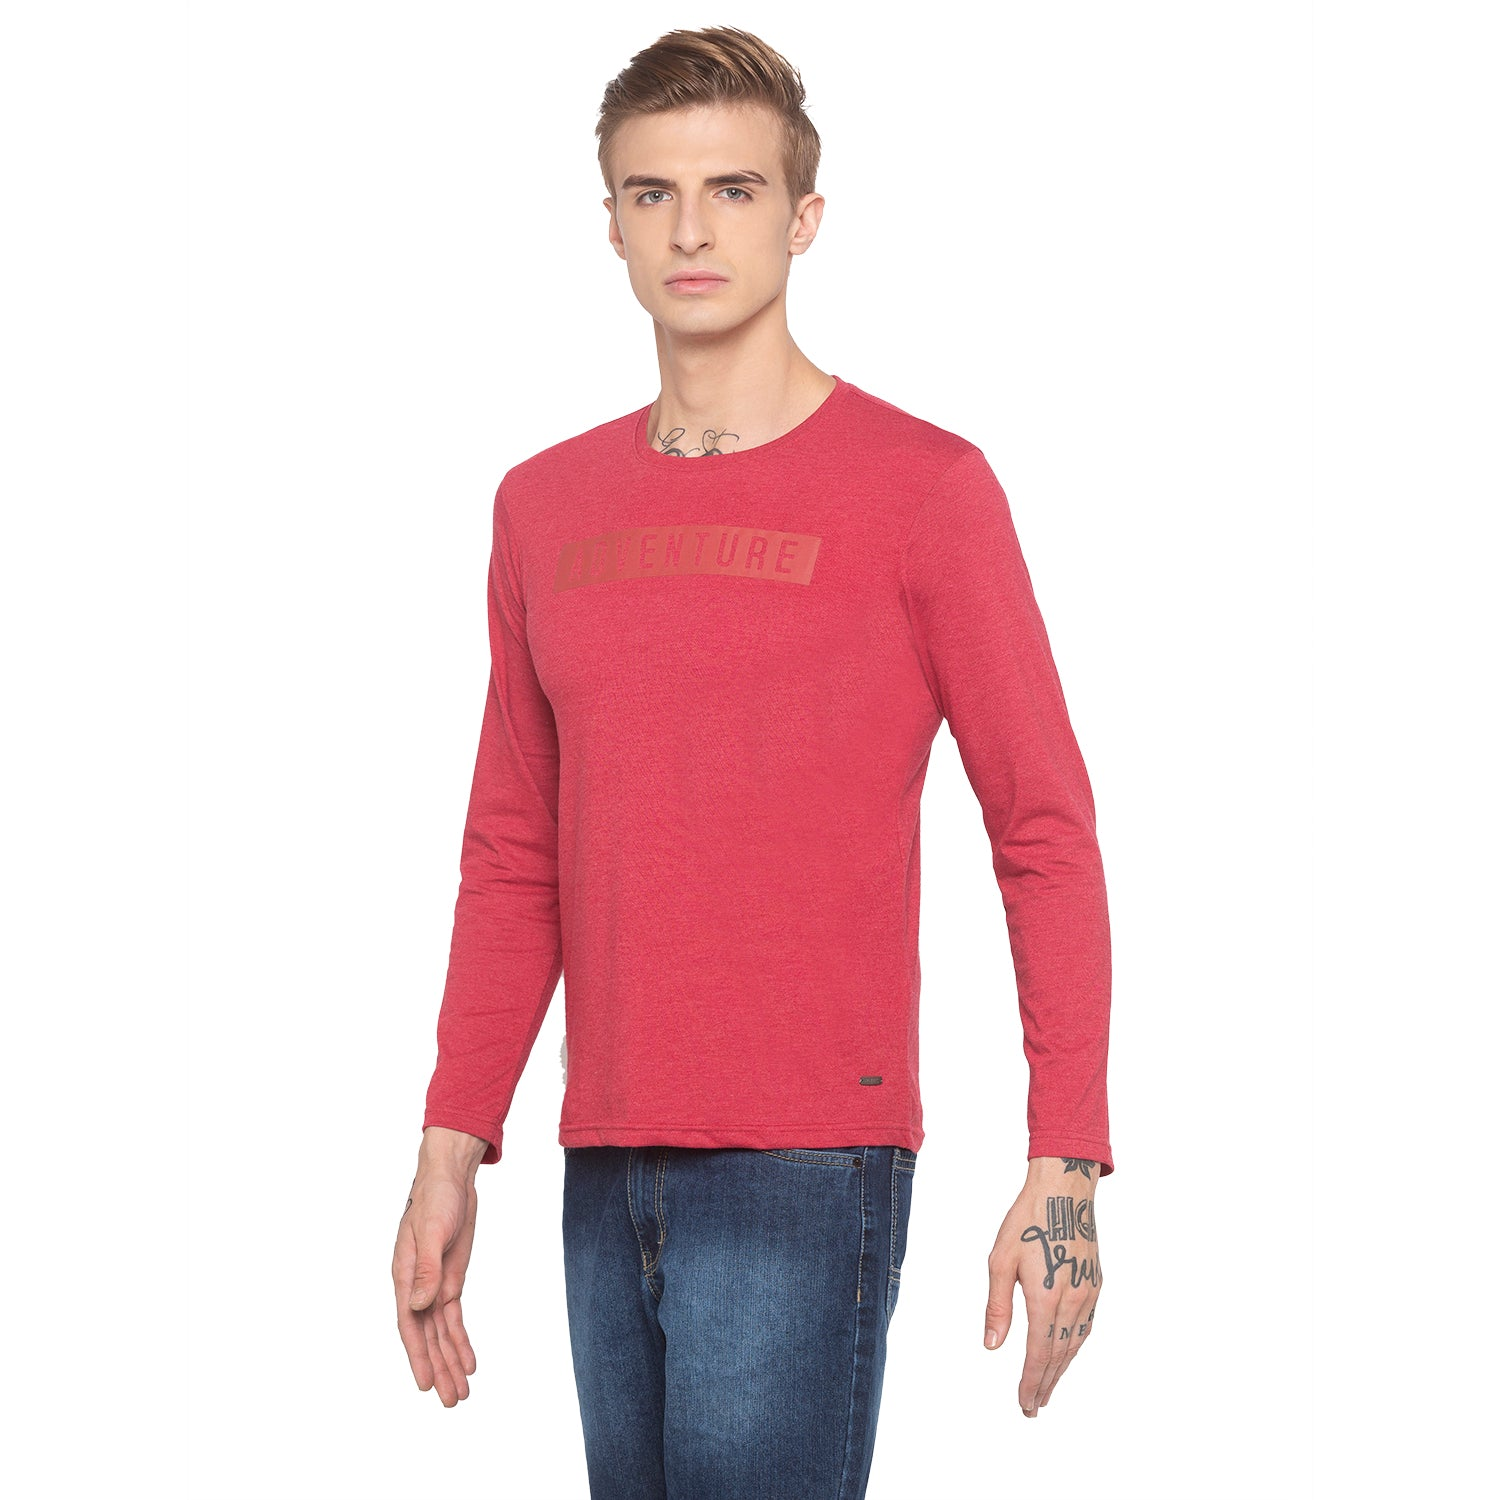 Adventure Full Sleeve Red T-shirt-2